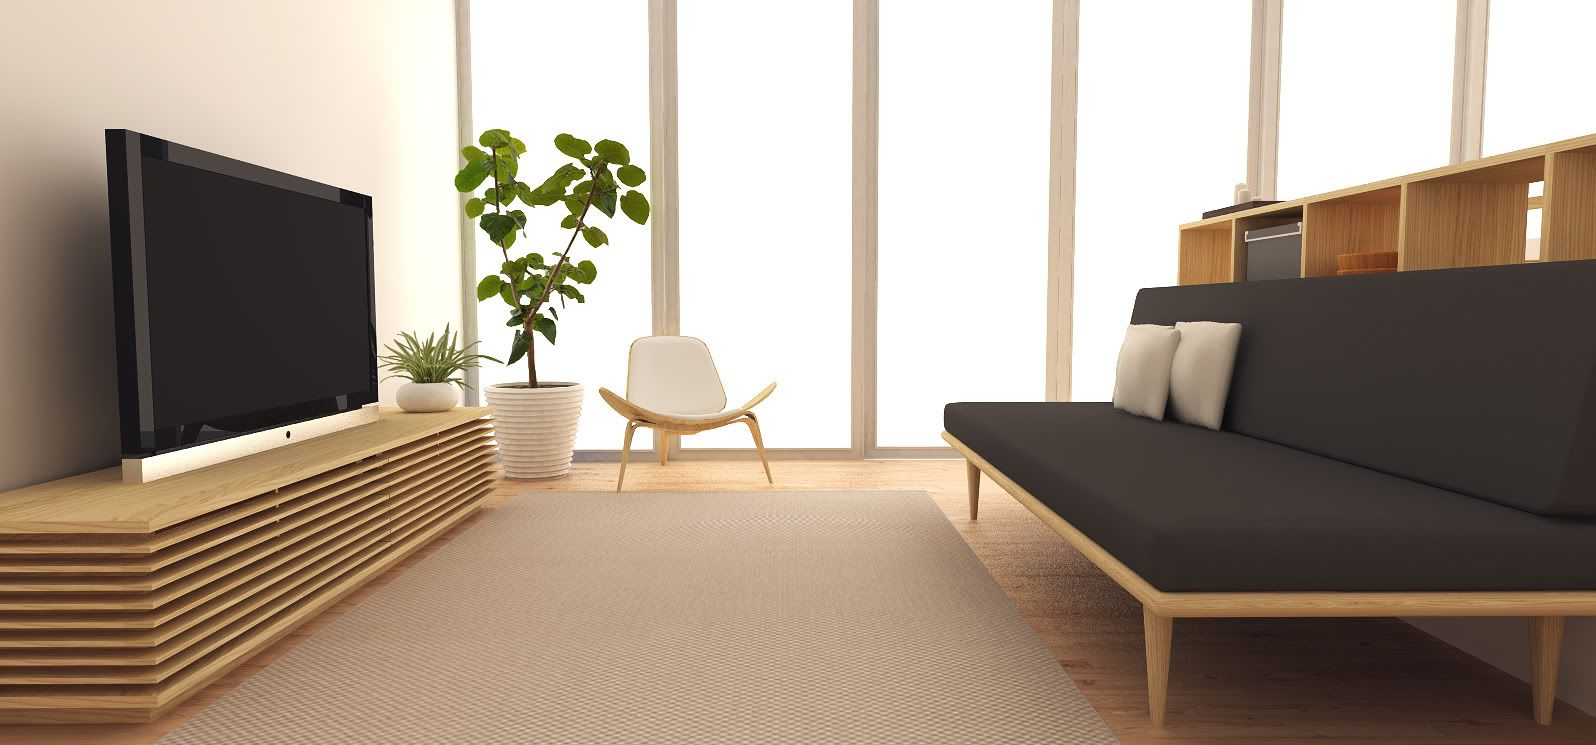 Minimalist tv console simple chair durable carpet and for Minimalist lifestyle